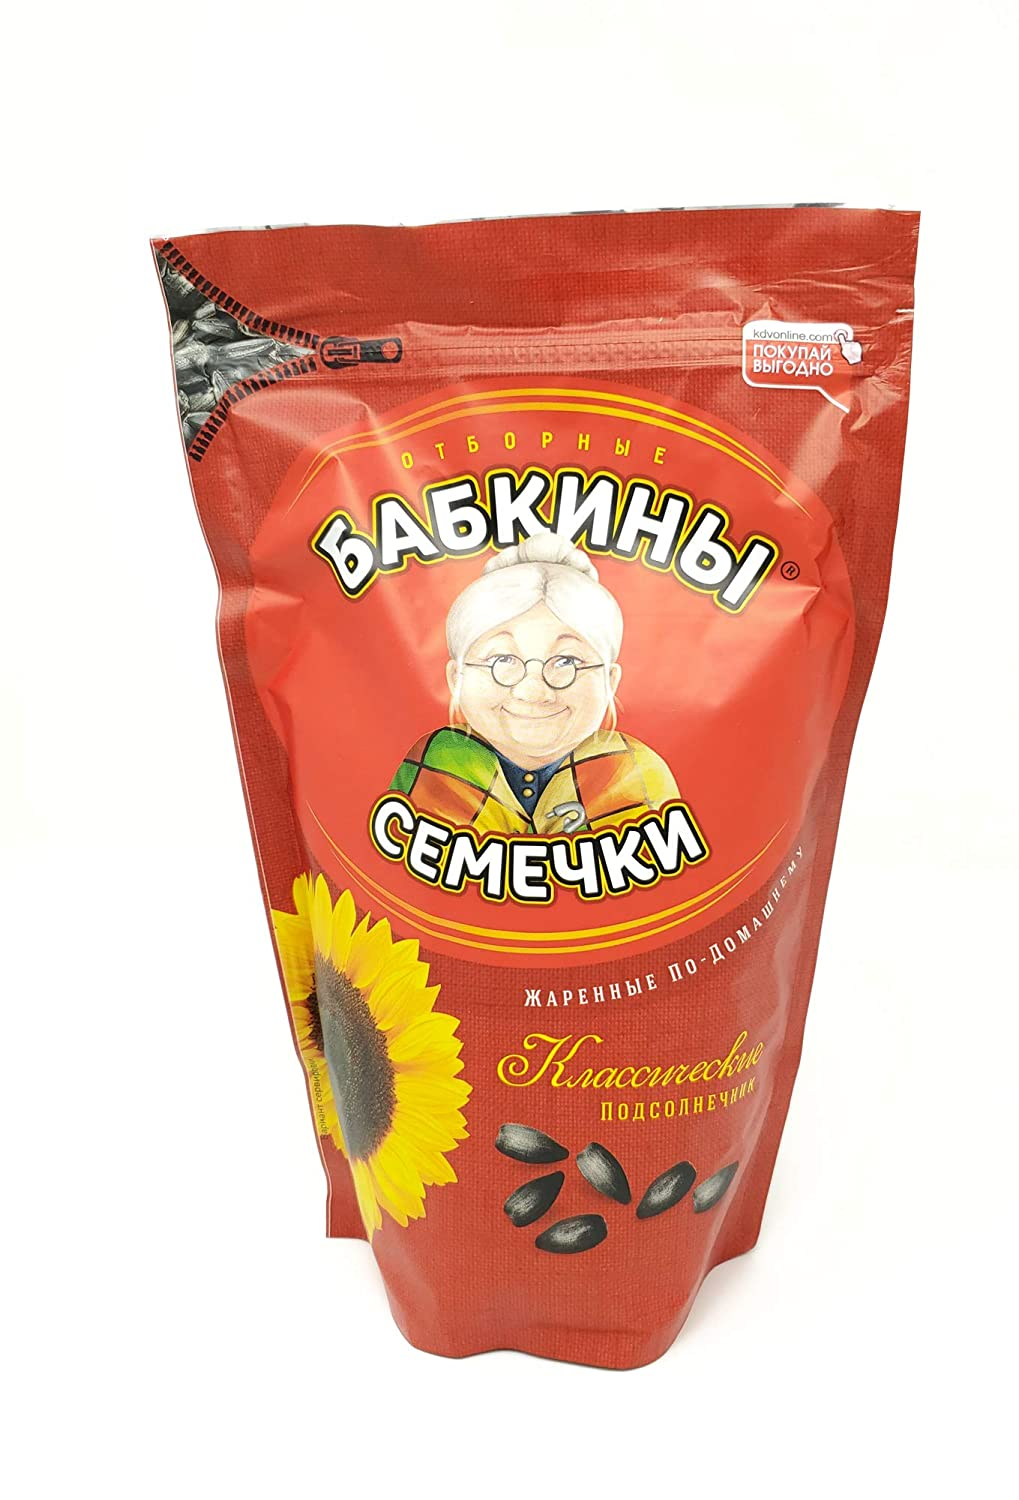 Imported Russian Roasted Sunflower Seeds Babkiny 17.63 Ounce, 500gr (Pack of 2)